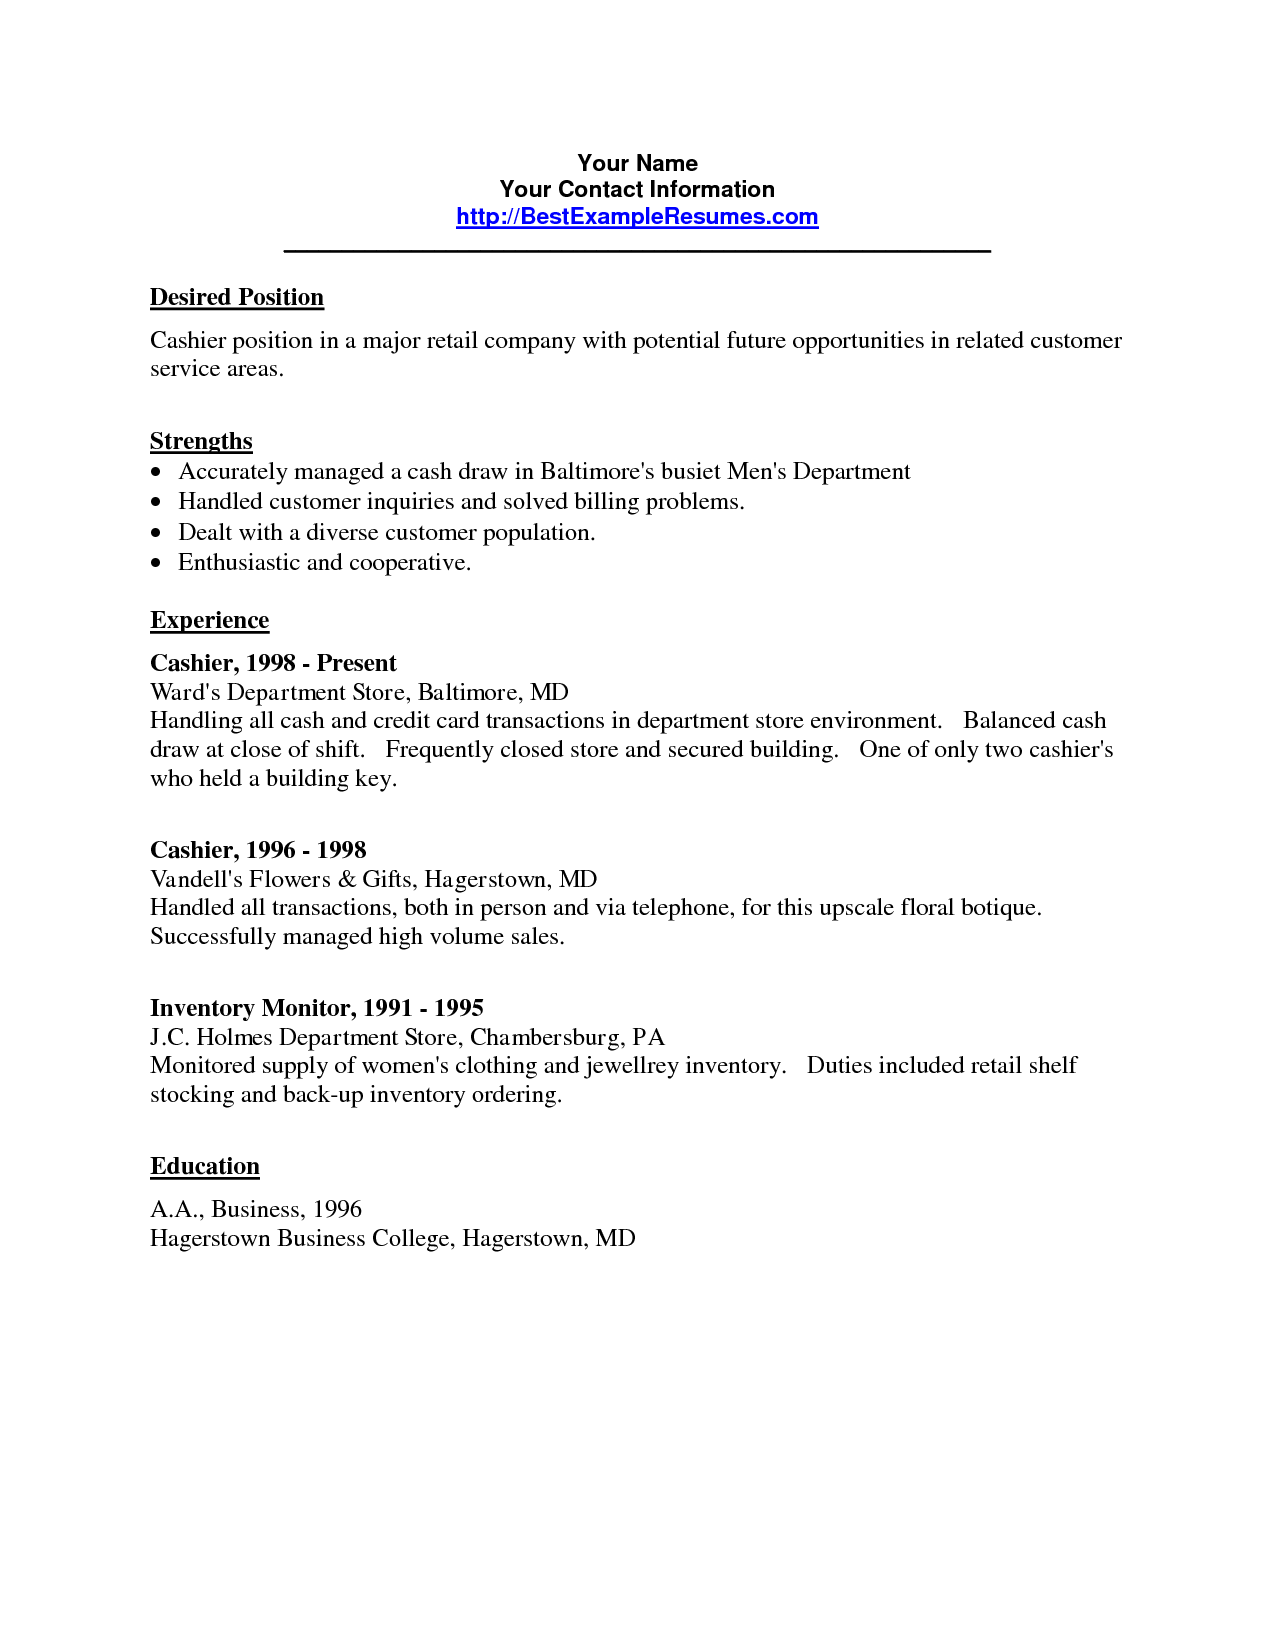 job resume sample cashier examples for application impressive